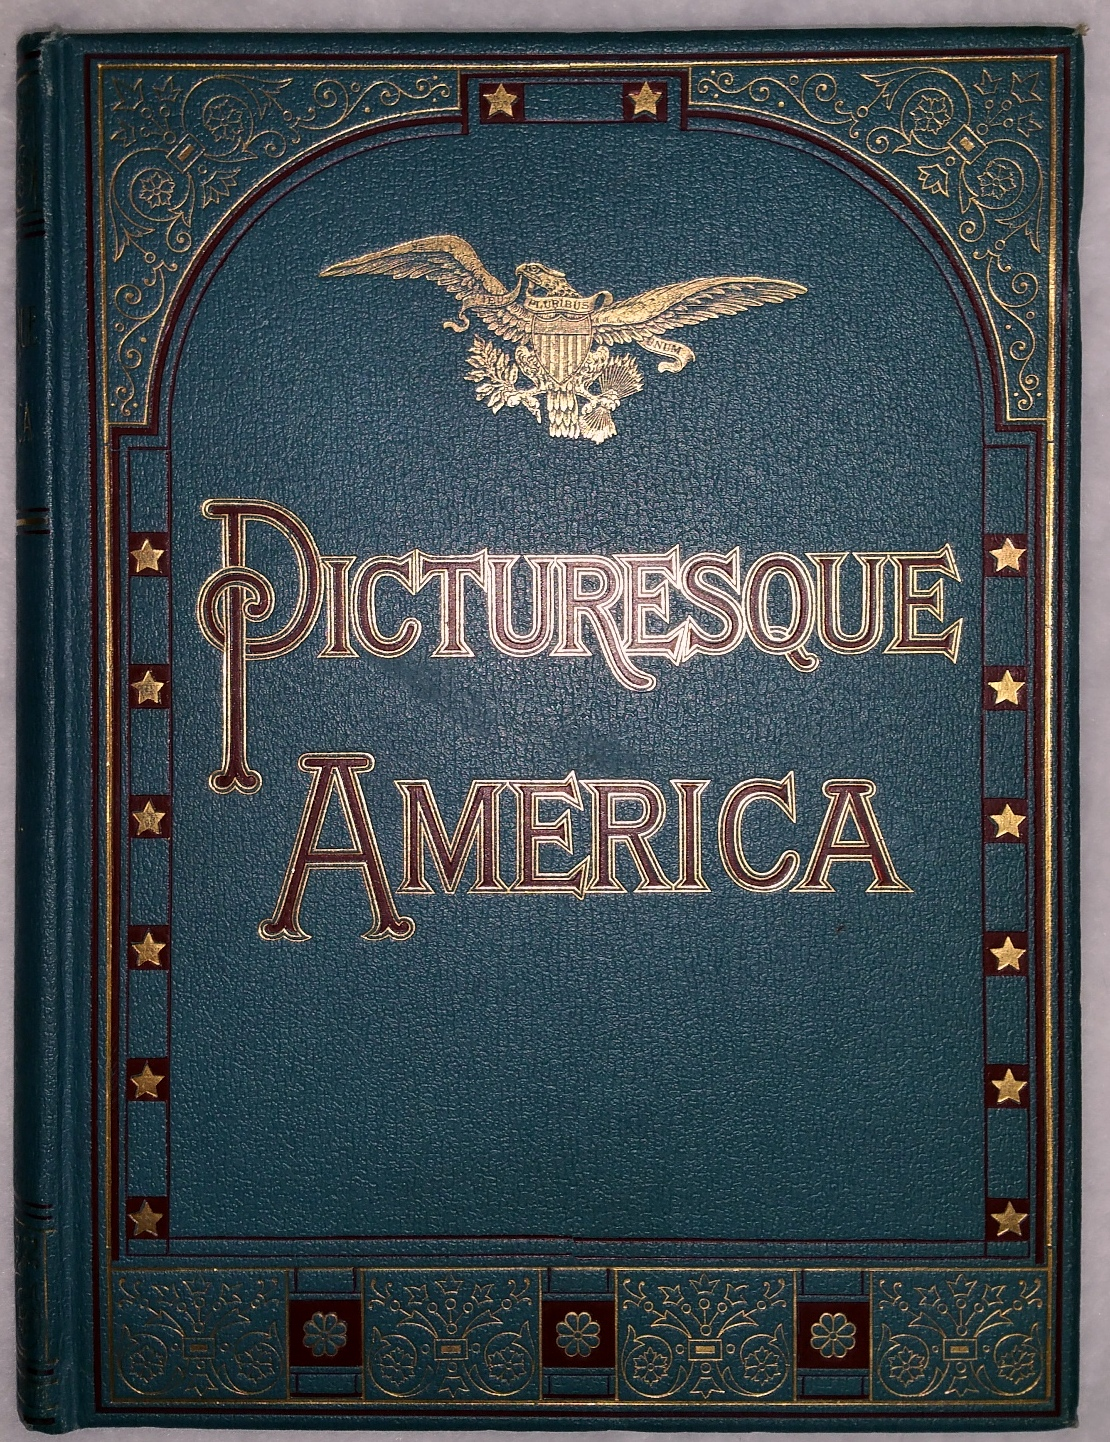 Image for Picturesque America:  A Delineation By Pen and Pencil of the Mountains, Rivers, Lakes Forest, Waterfalls, Shores, Canons, Valleys, Cities, and Other Picturesque Features of the United States (Four Volumes)